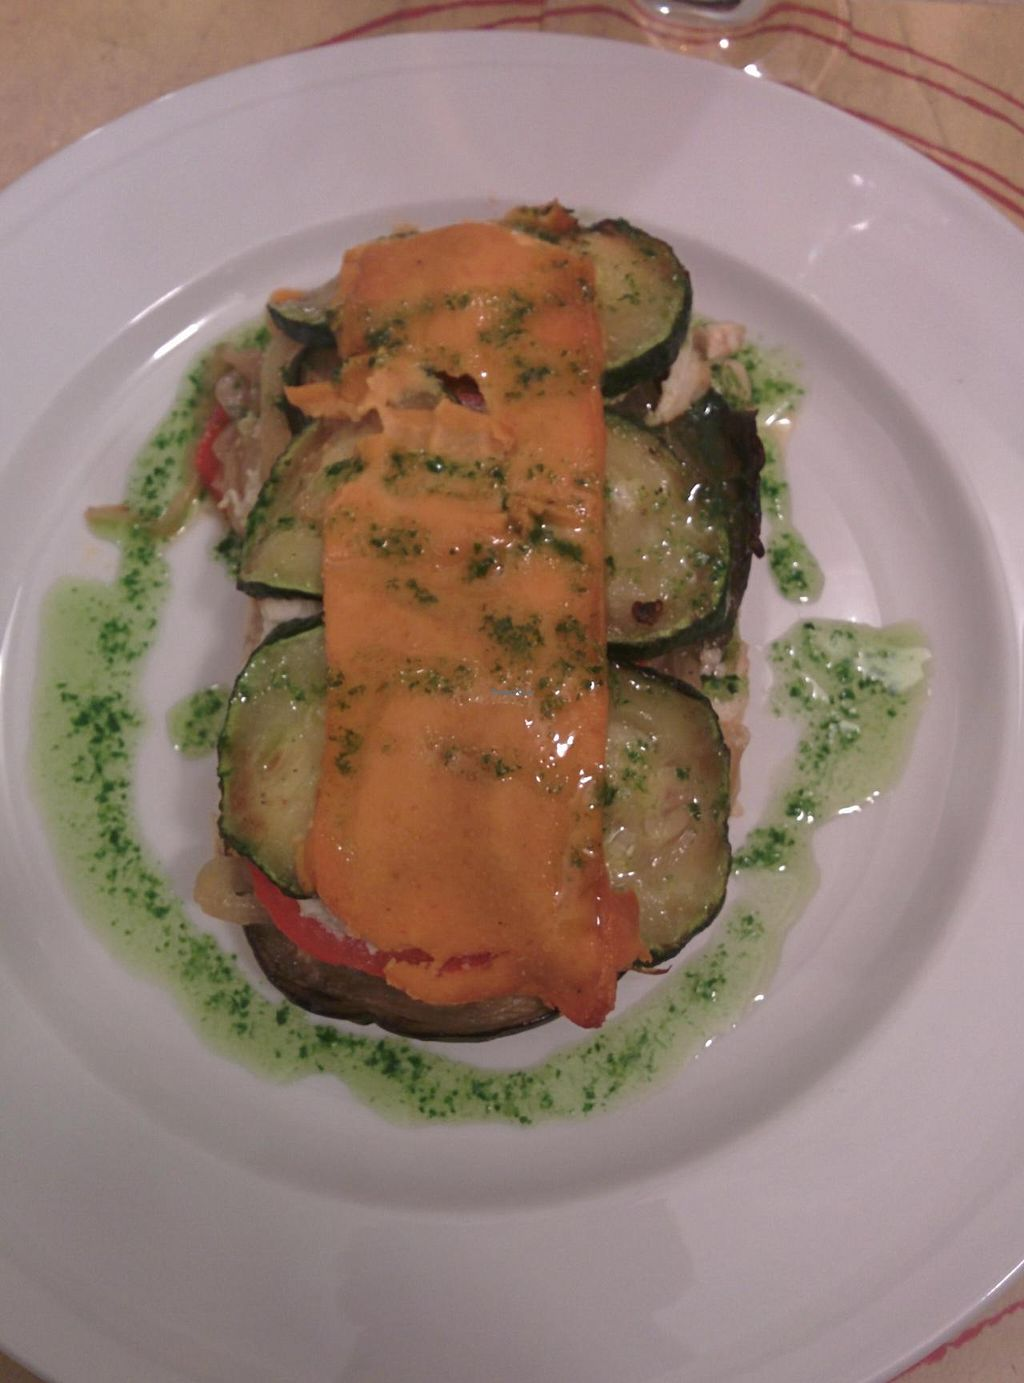 """Photo of Vita Viridis Restaurant  by <a href=""""/members/profile/Harp"""">Harp</a> <br/>Eggplant lasagna <br/> July 31, 2014  - <a href='/contact/abuse/image/41476/75613'>Report</a>"""